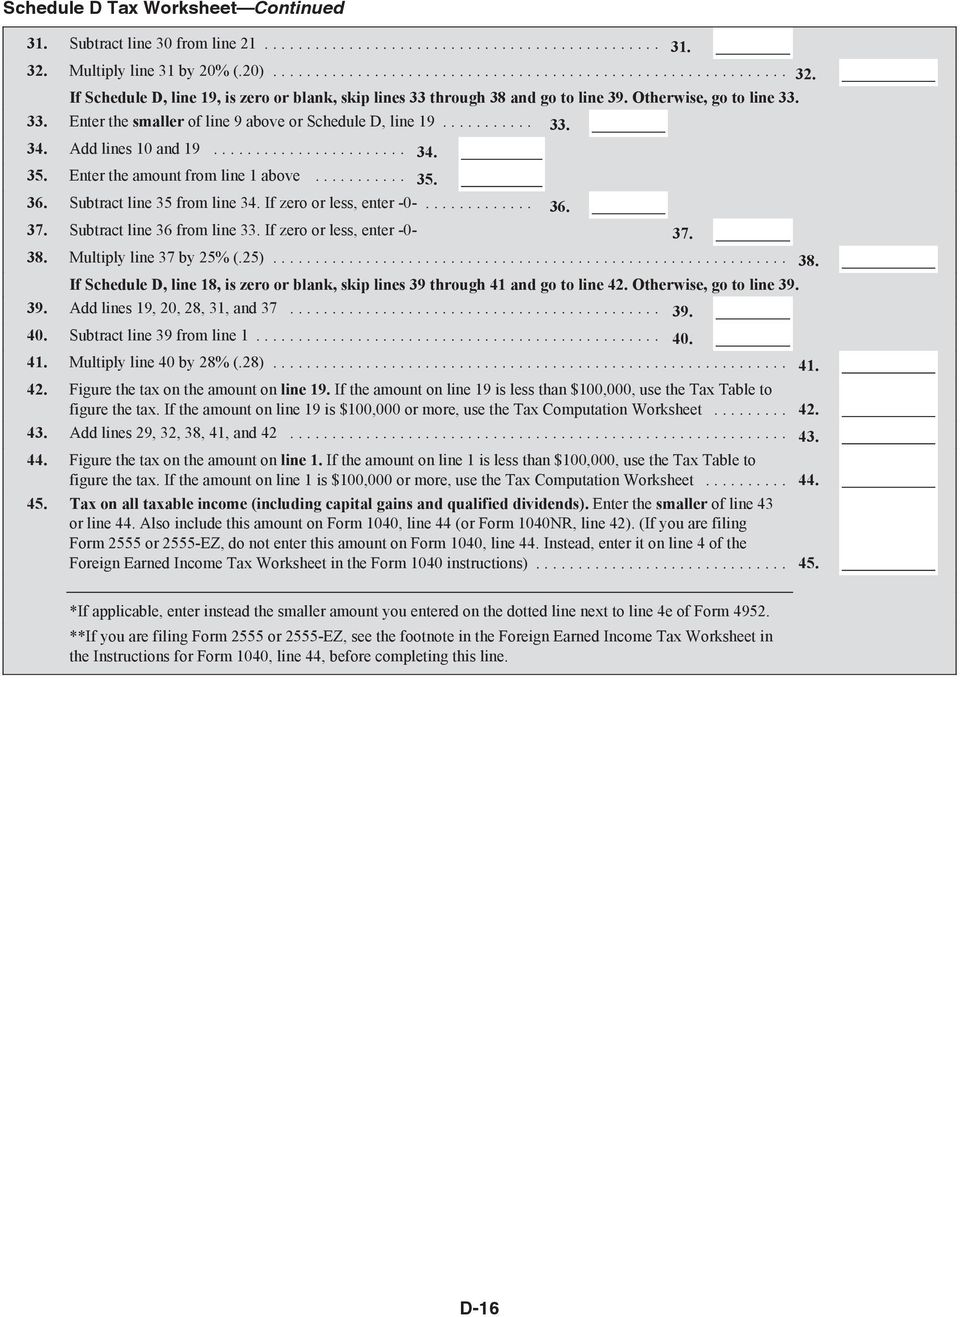 Foreign earned income tax worksheet in the form 1040 instructions